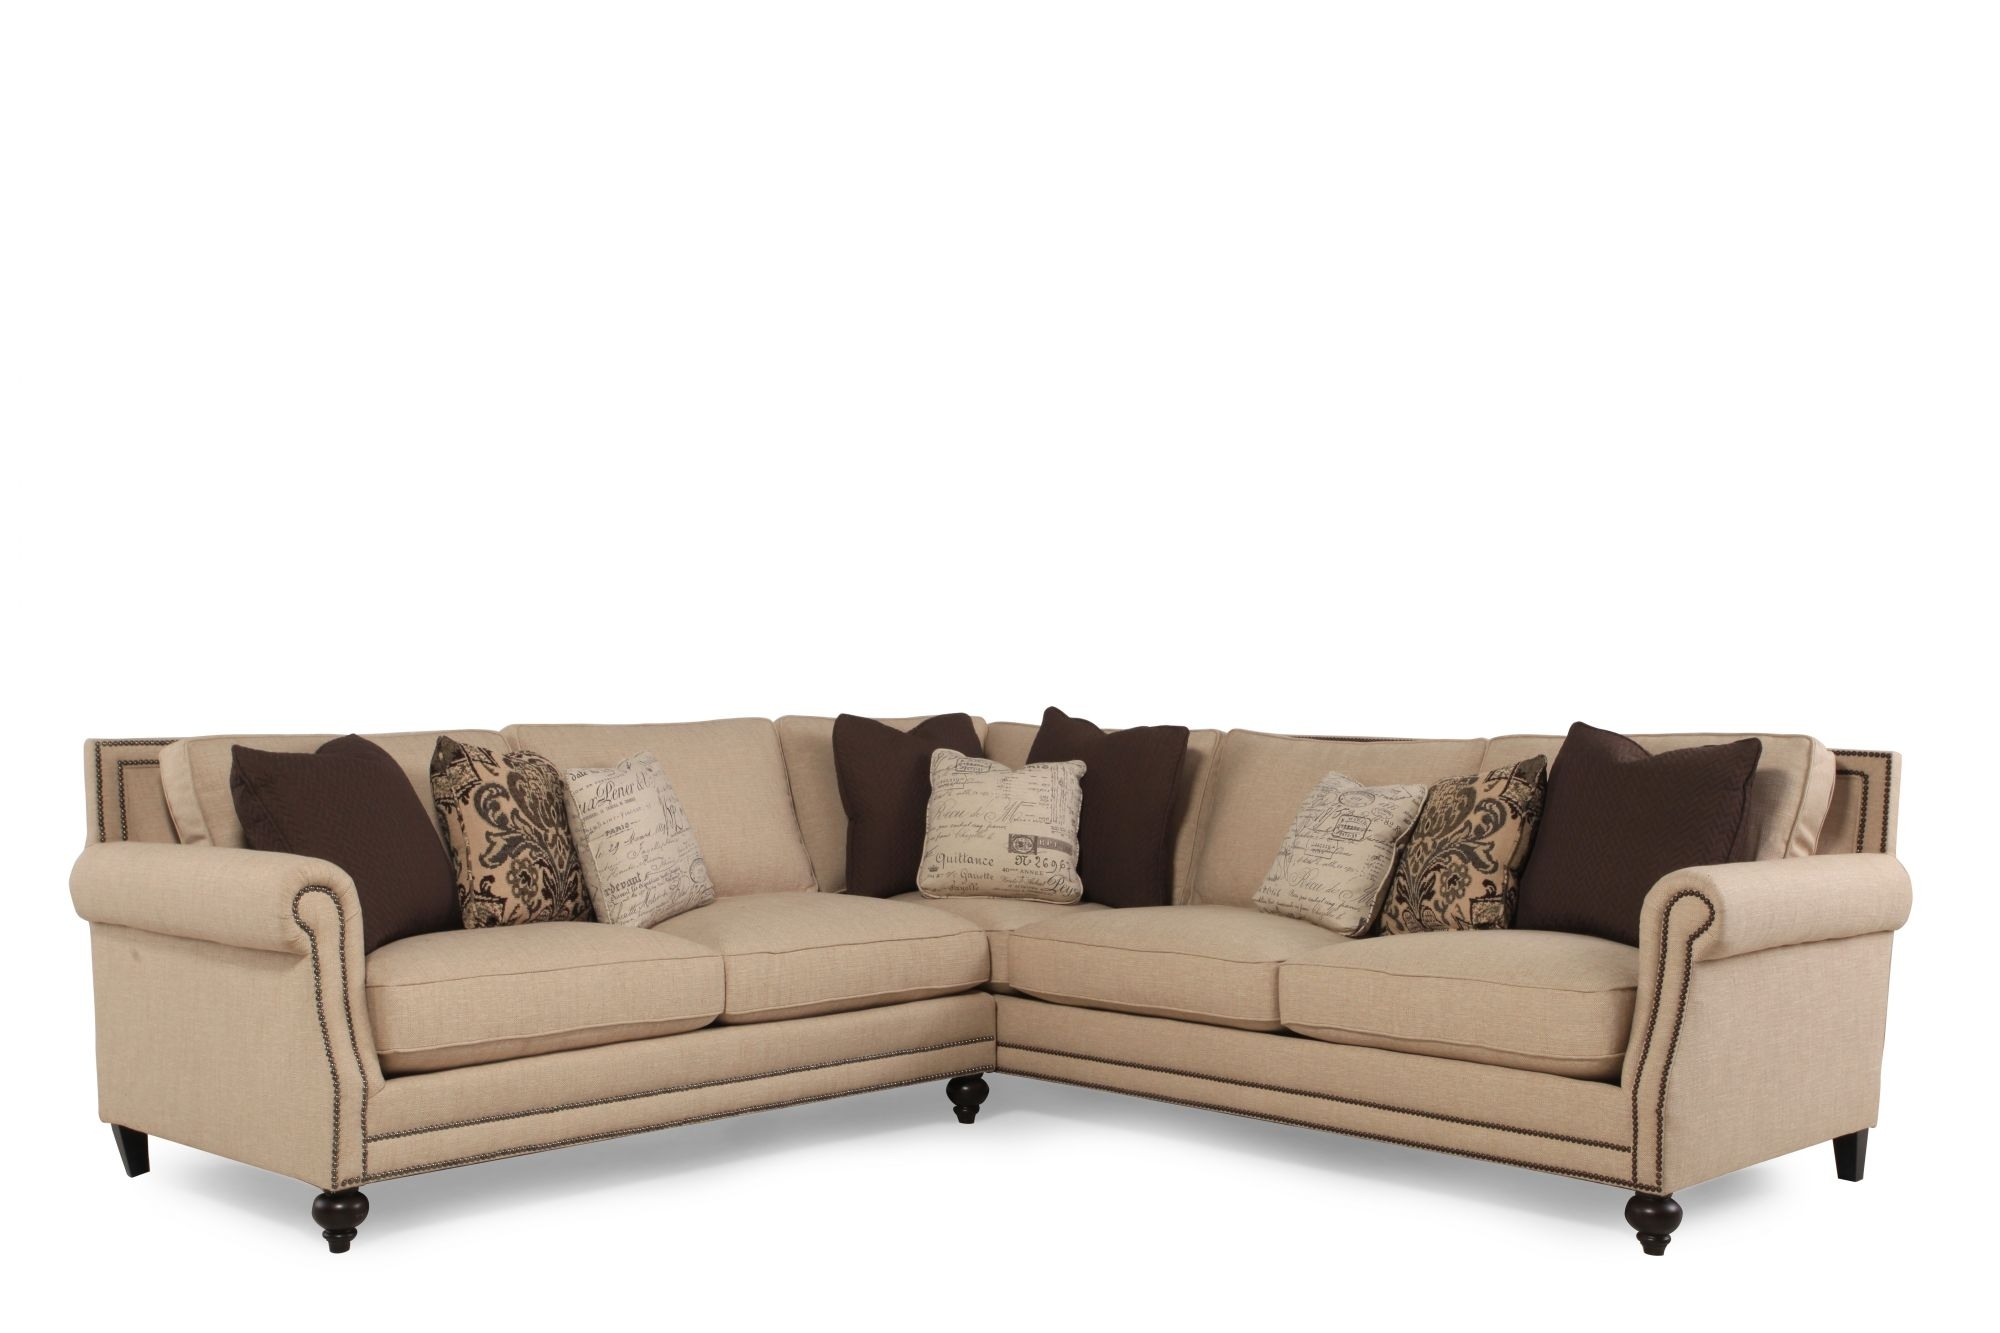 Sectional Sofa Design: Best Selling Bernhardt Sectional Sofa Leather With  Regard To Mathis Brothers Sectional